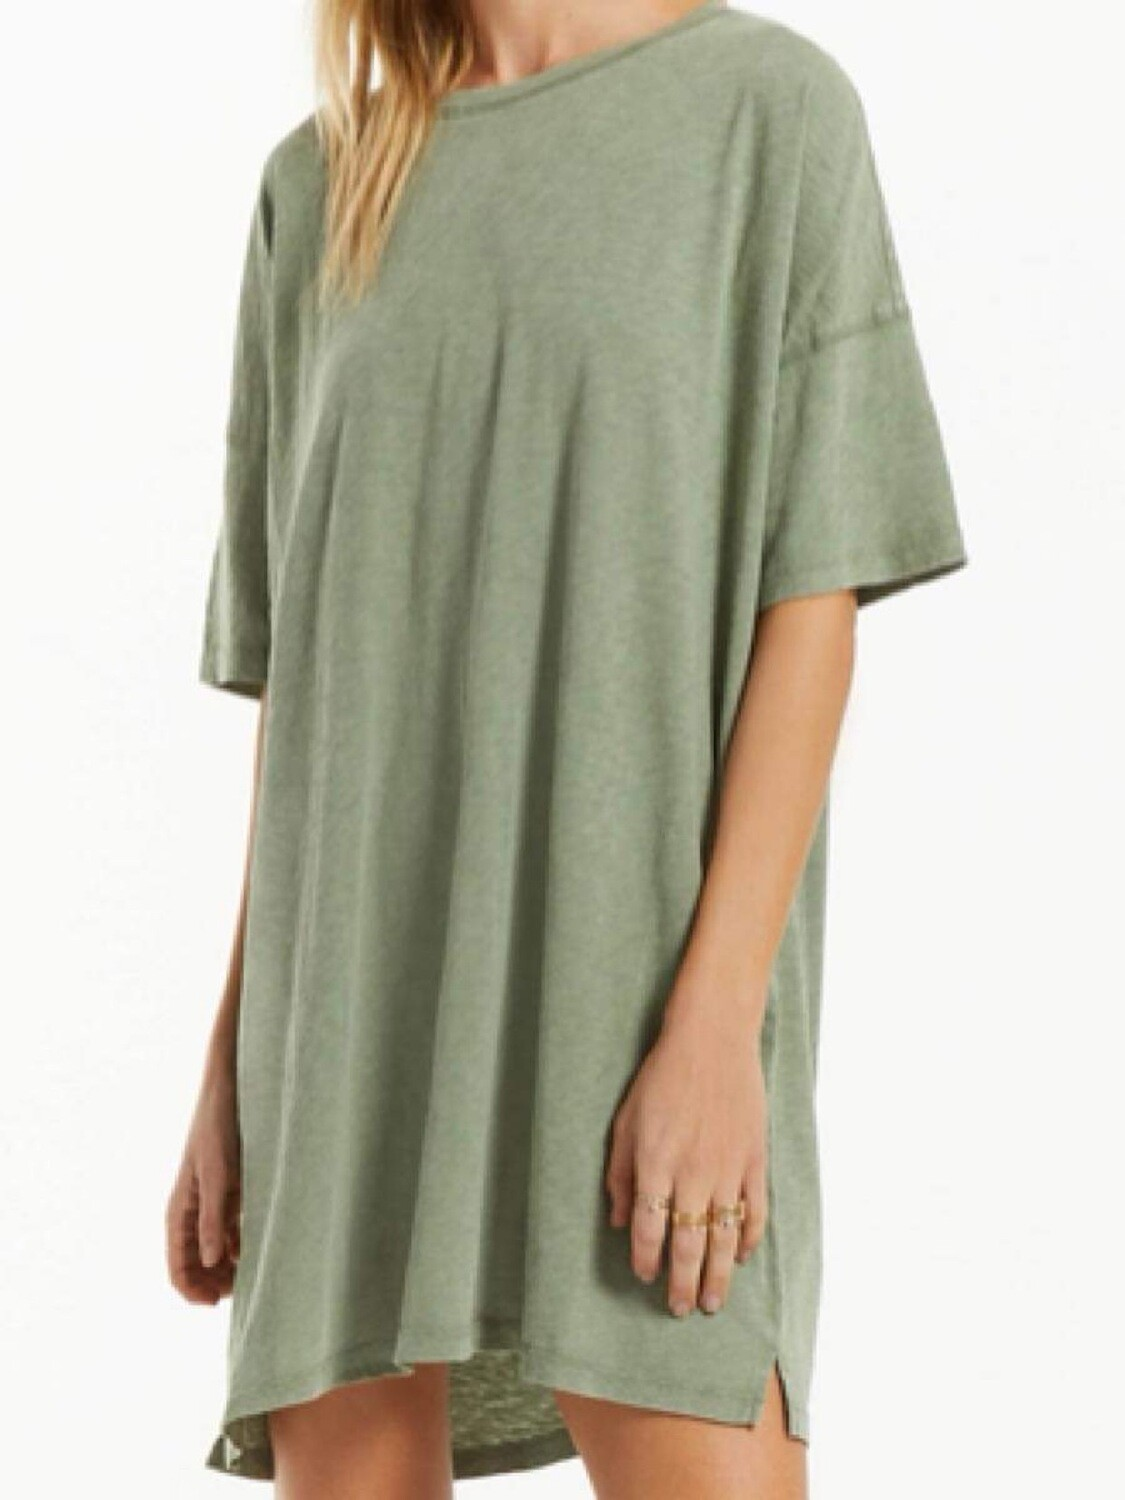 Z Supply Delta Green Shirt Dress